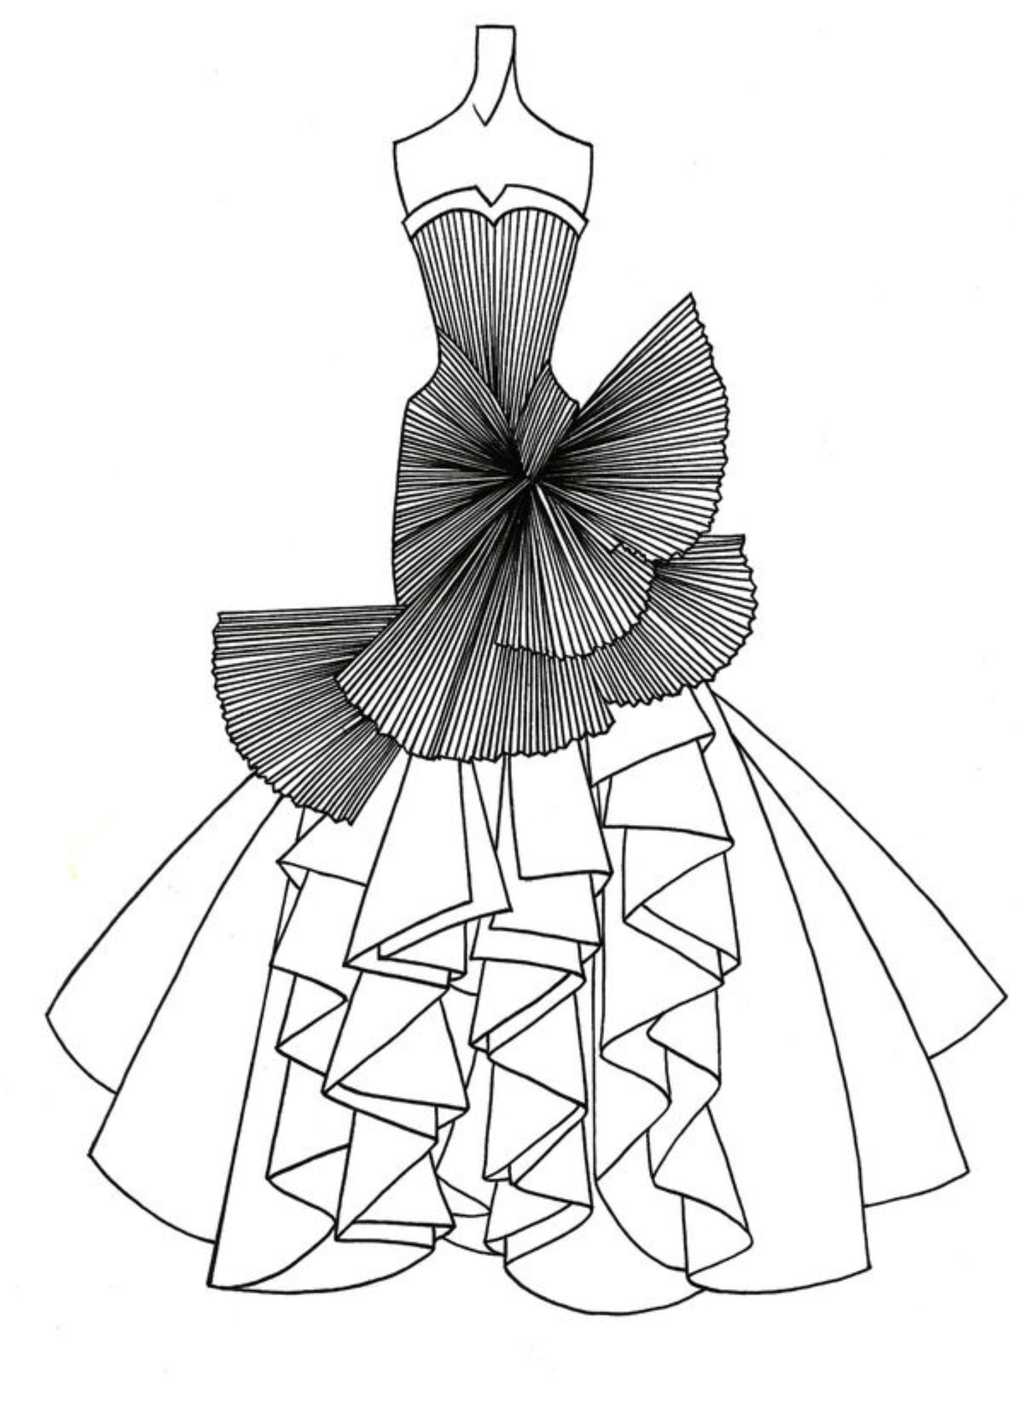 grayscale coloring pages - 裙子素描画图片大全